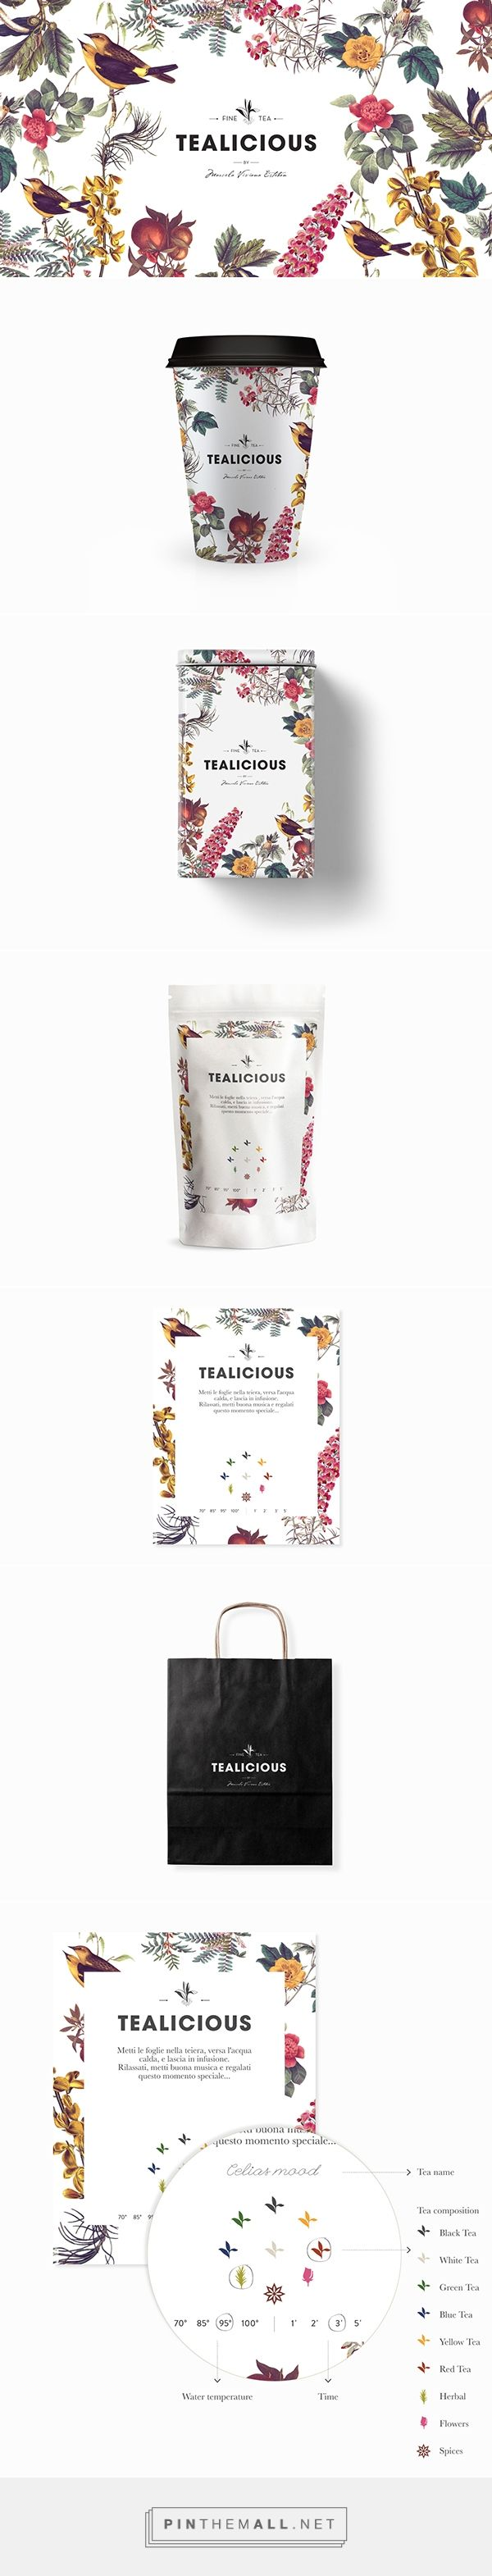 Decorative illustrations & simple bold & script type | Tealicious, Florence, Italy. Designed by Juana Alvarez.